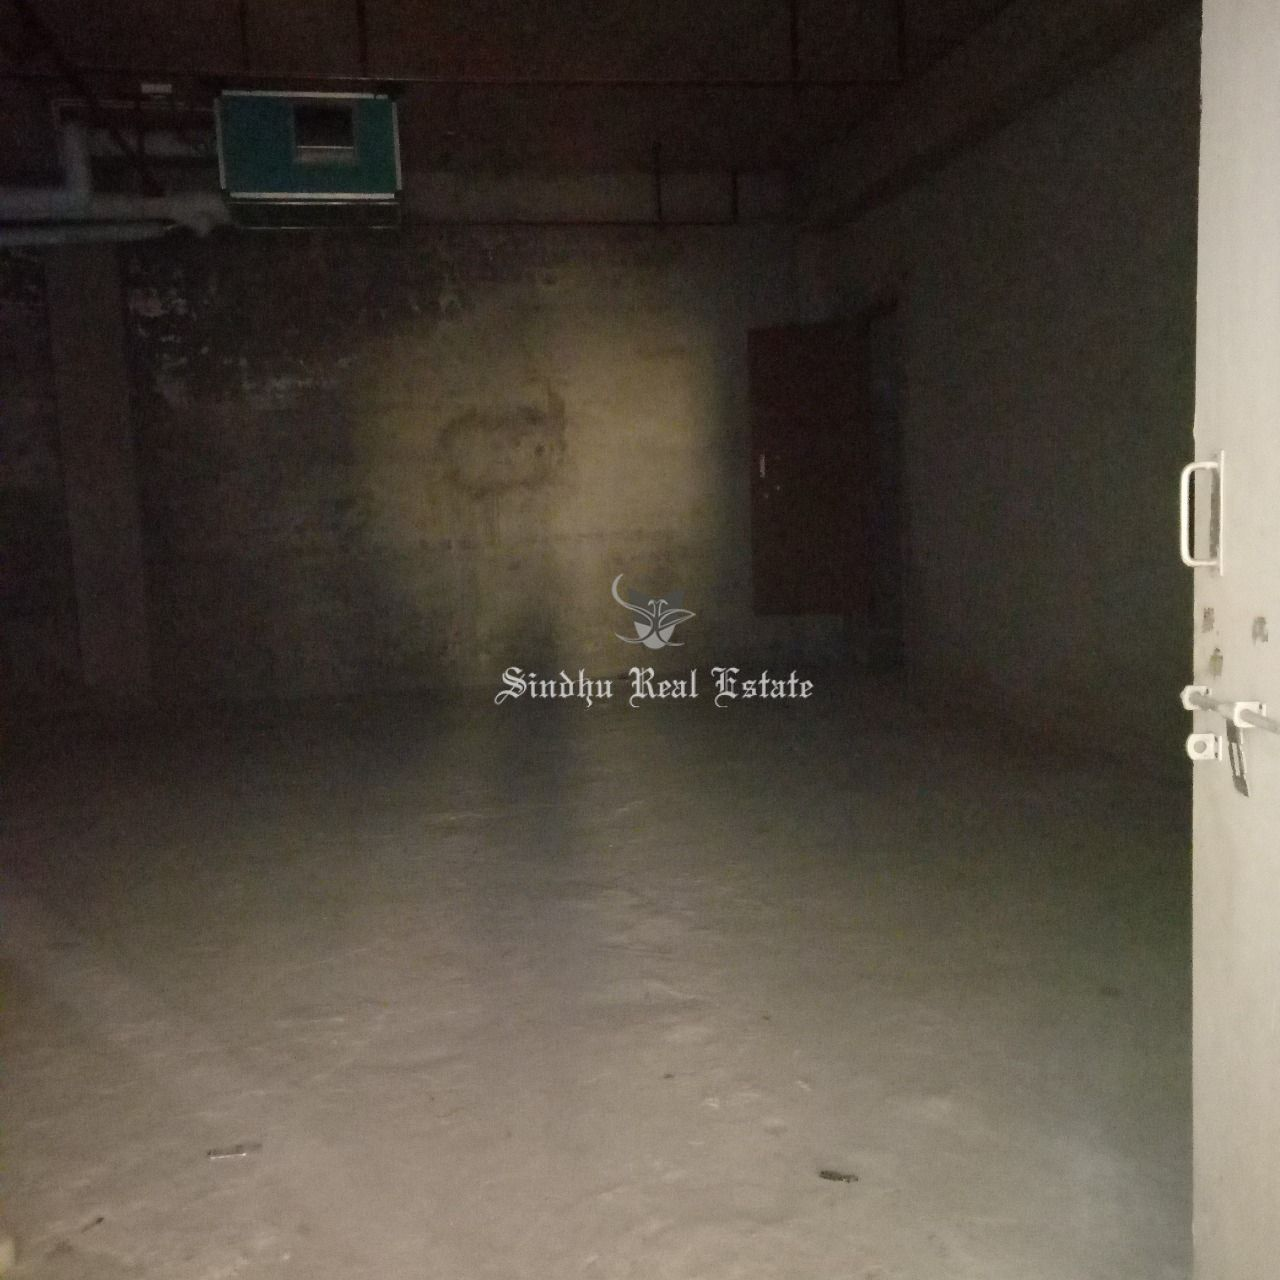 A Good Condition Warehouse For Rent in Howrah